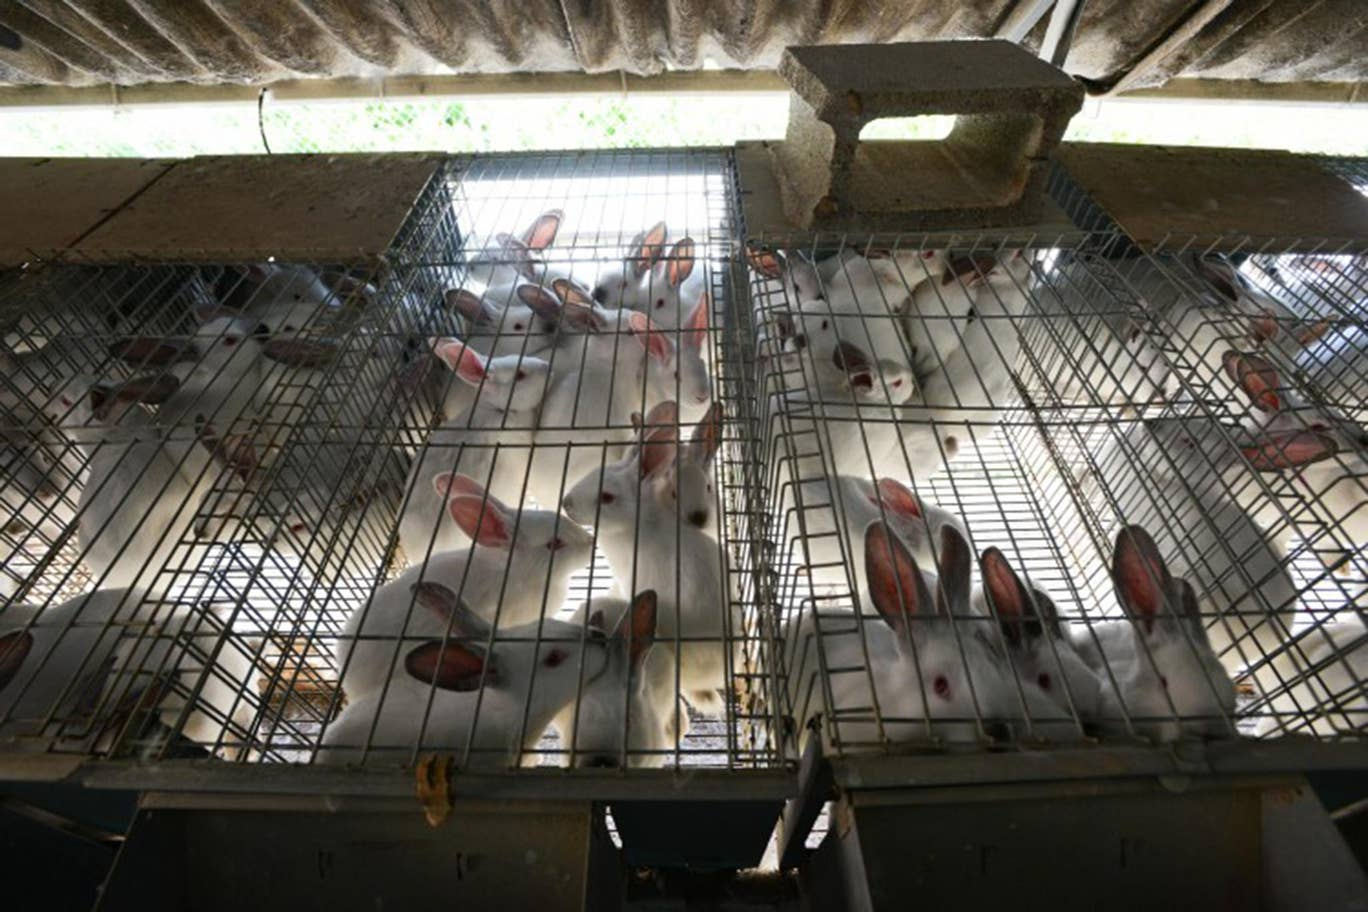 Rabbits in breeding cages